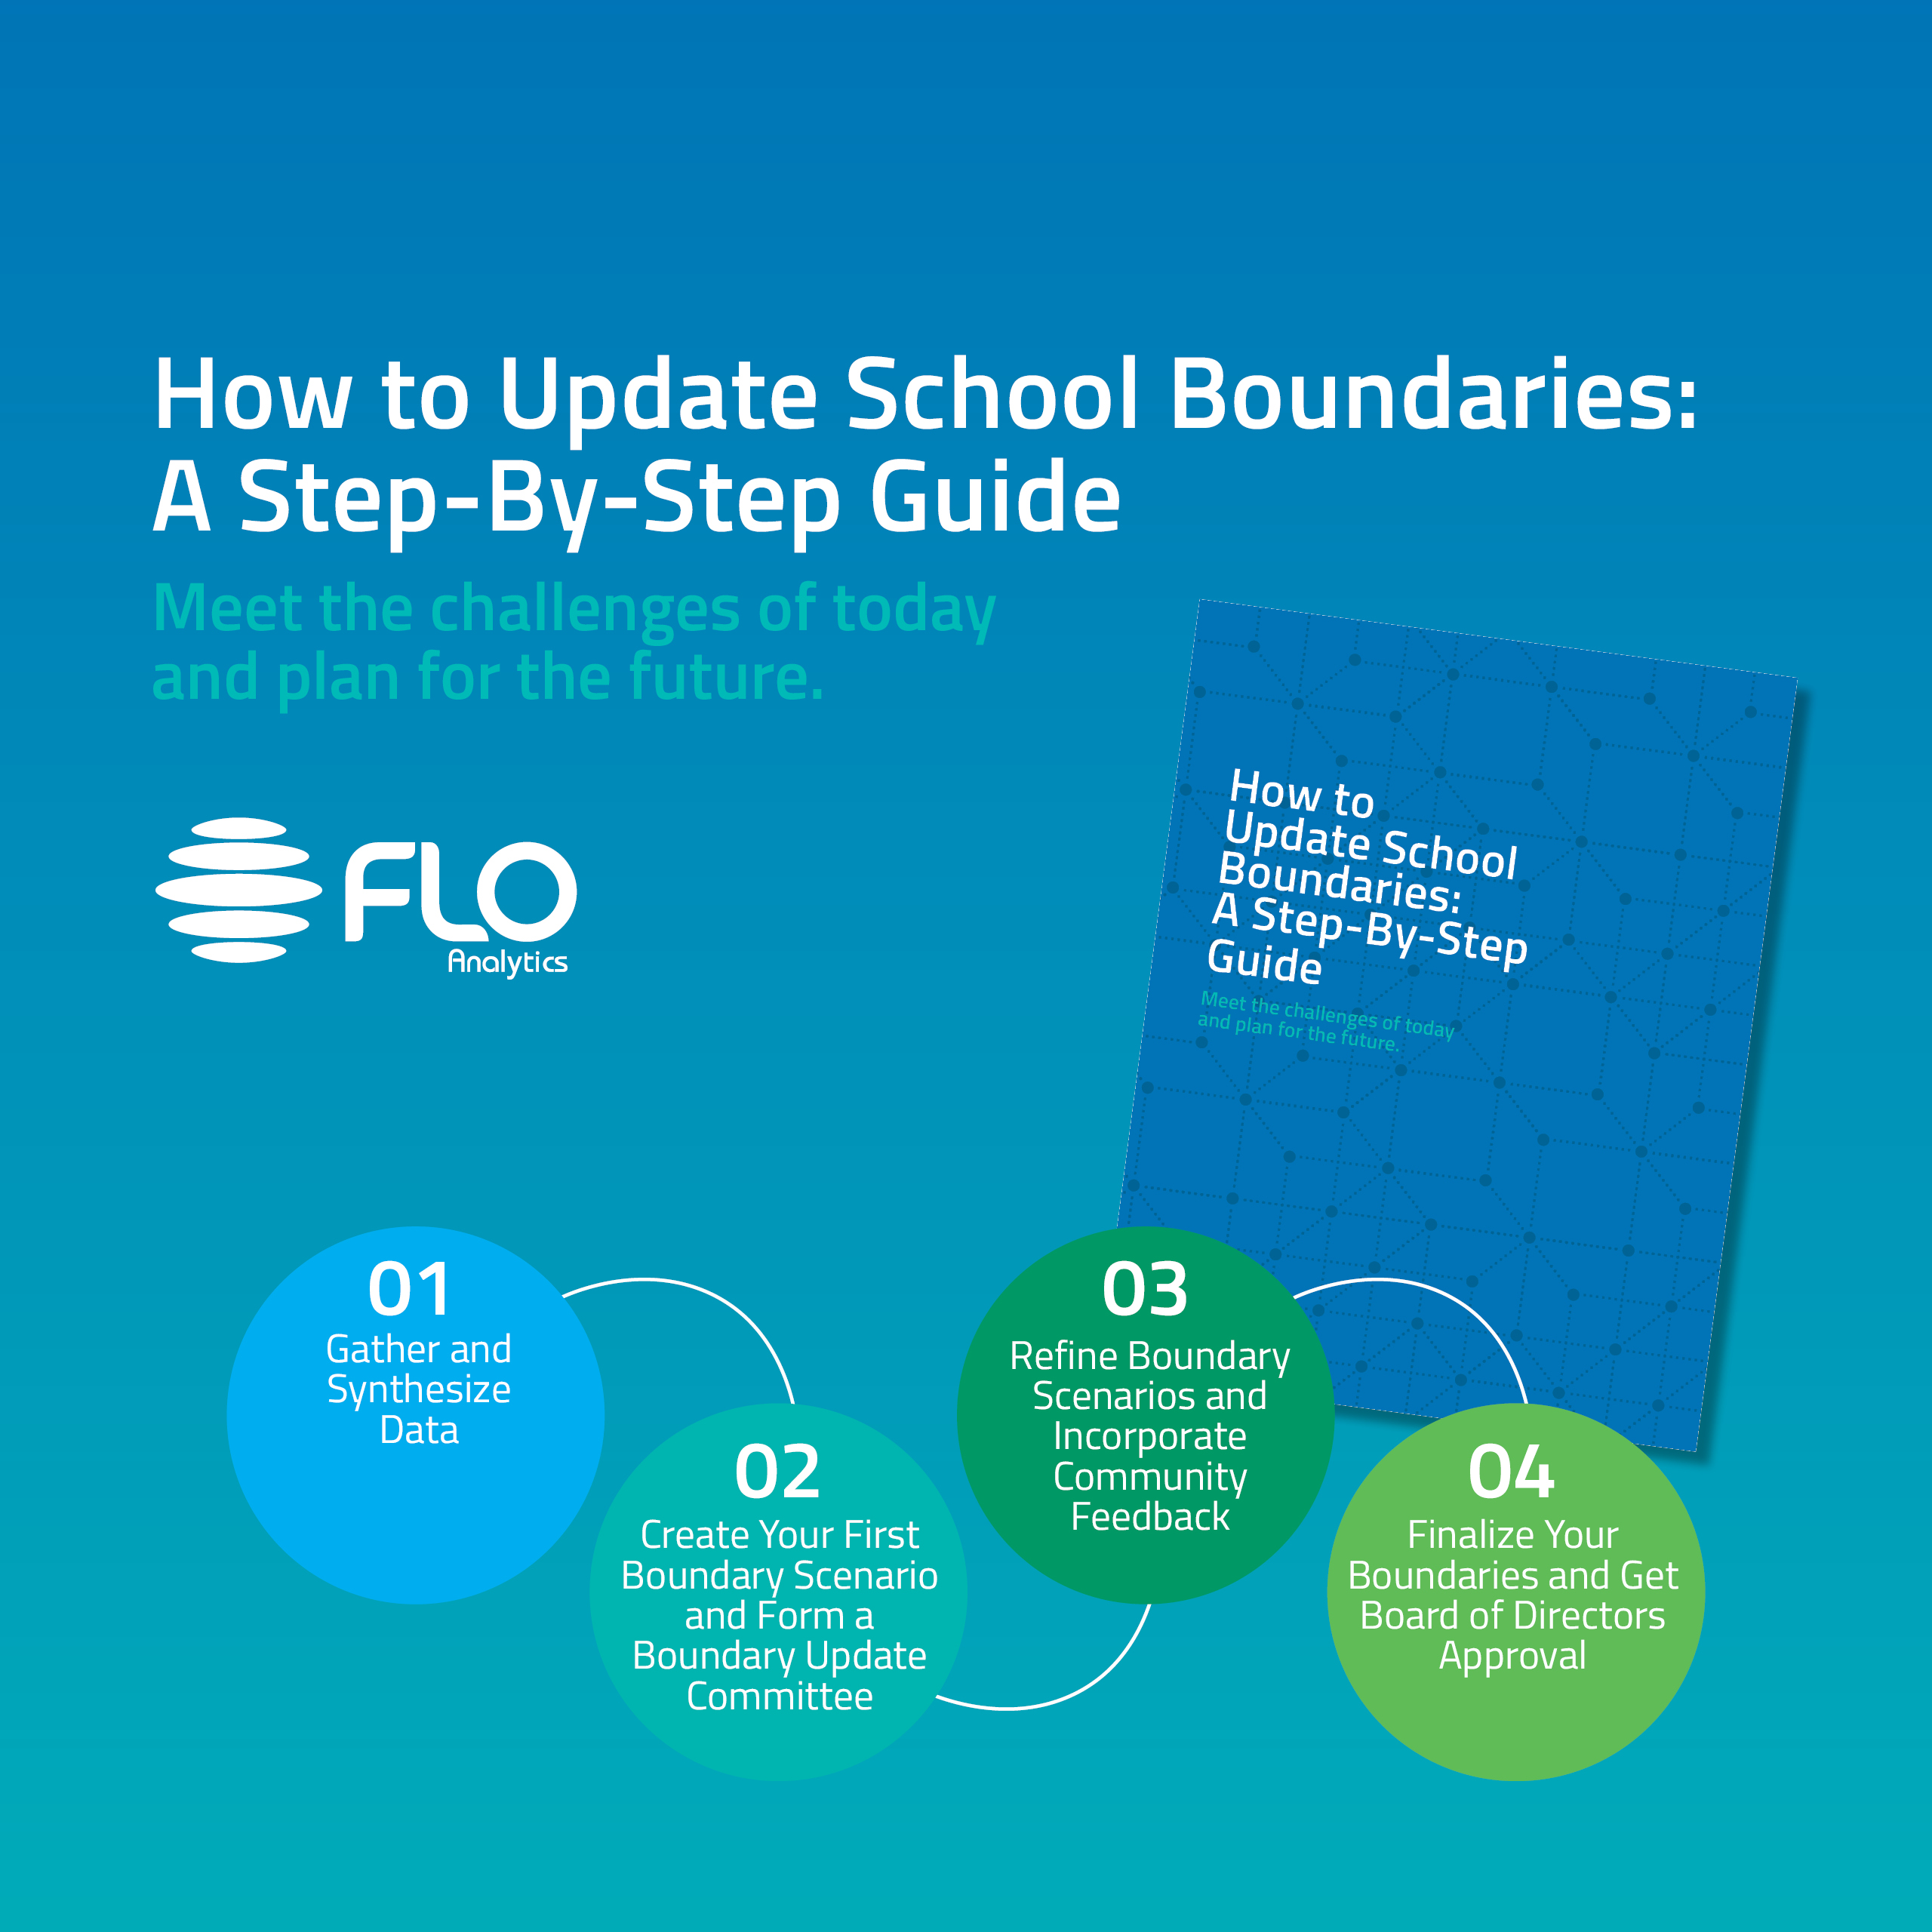 How to Update School Boundaries | FLO Analytics